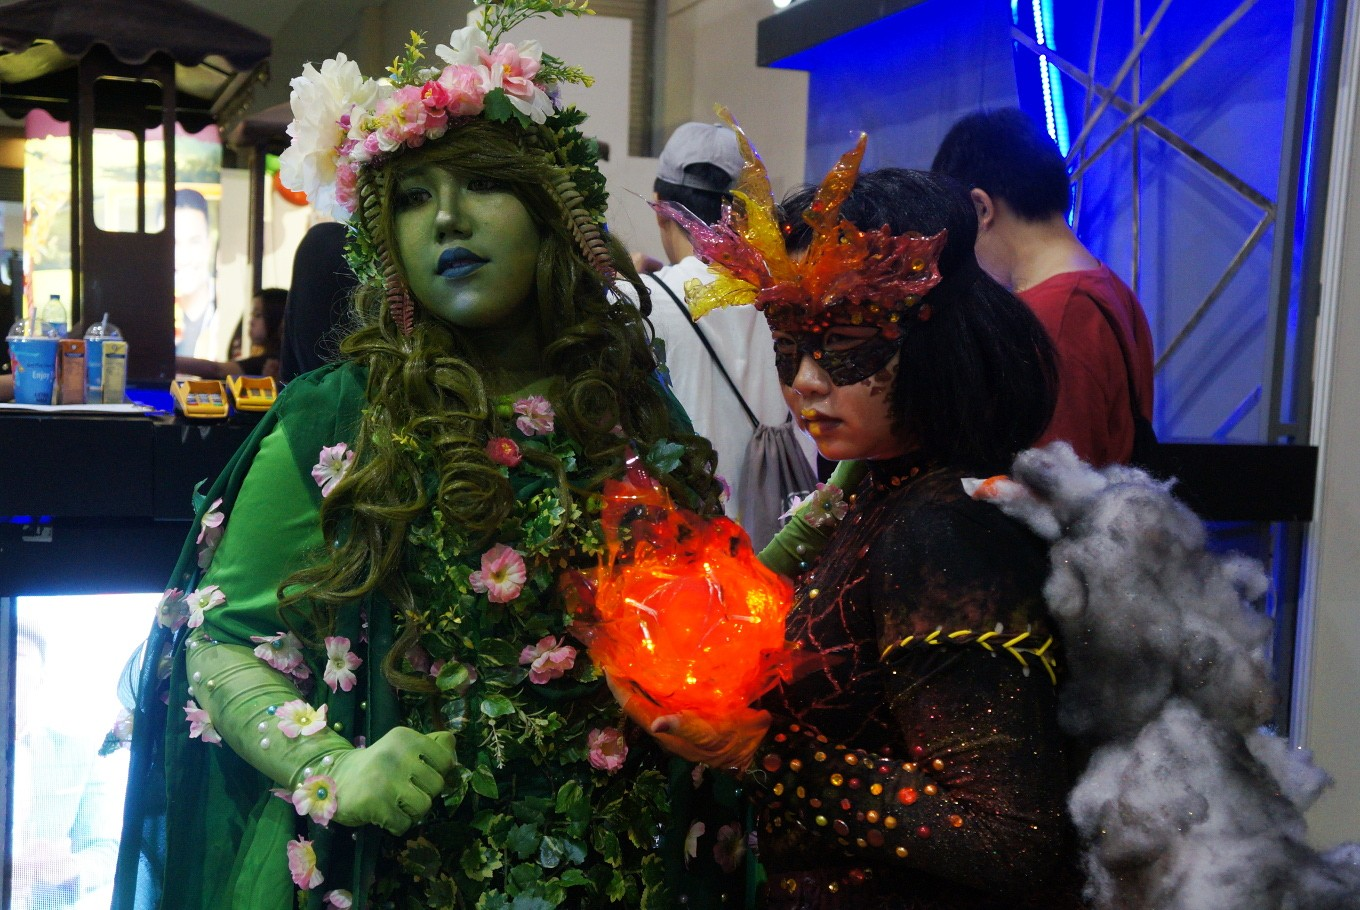 Two cosplayers collaborate as characters from Disney's 'Moana': goddess Te Fiti (left) and main antagonist Te Ka.